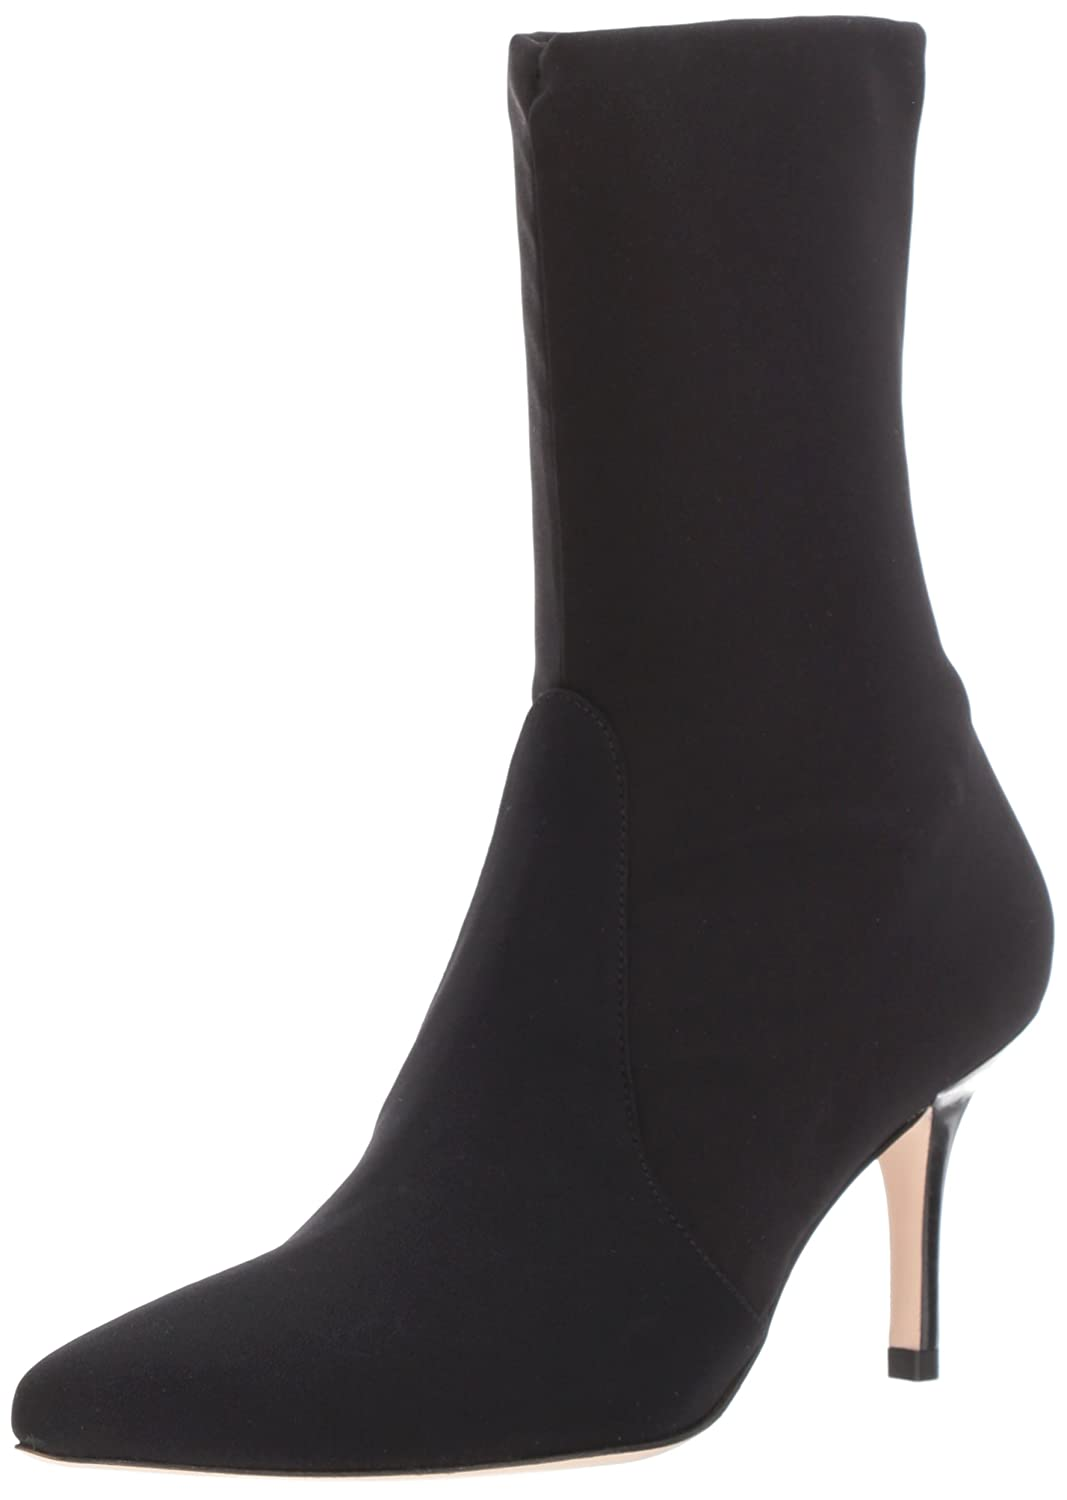 Stuart Weitzman Women's Axiom Ankle Boot B073C823QL 9.5 B(M) US|Black Micro